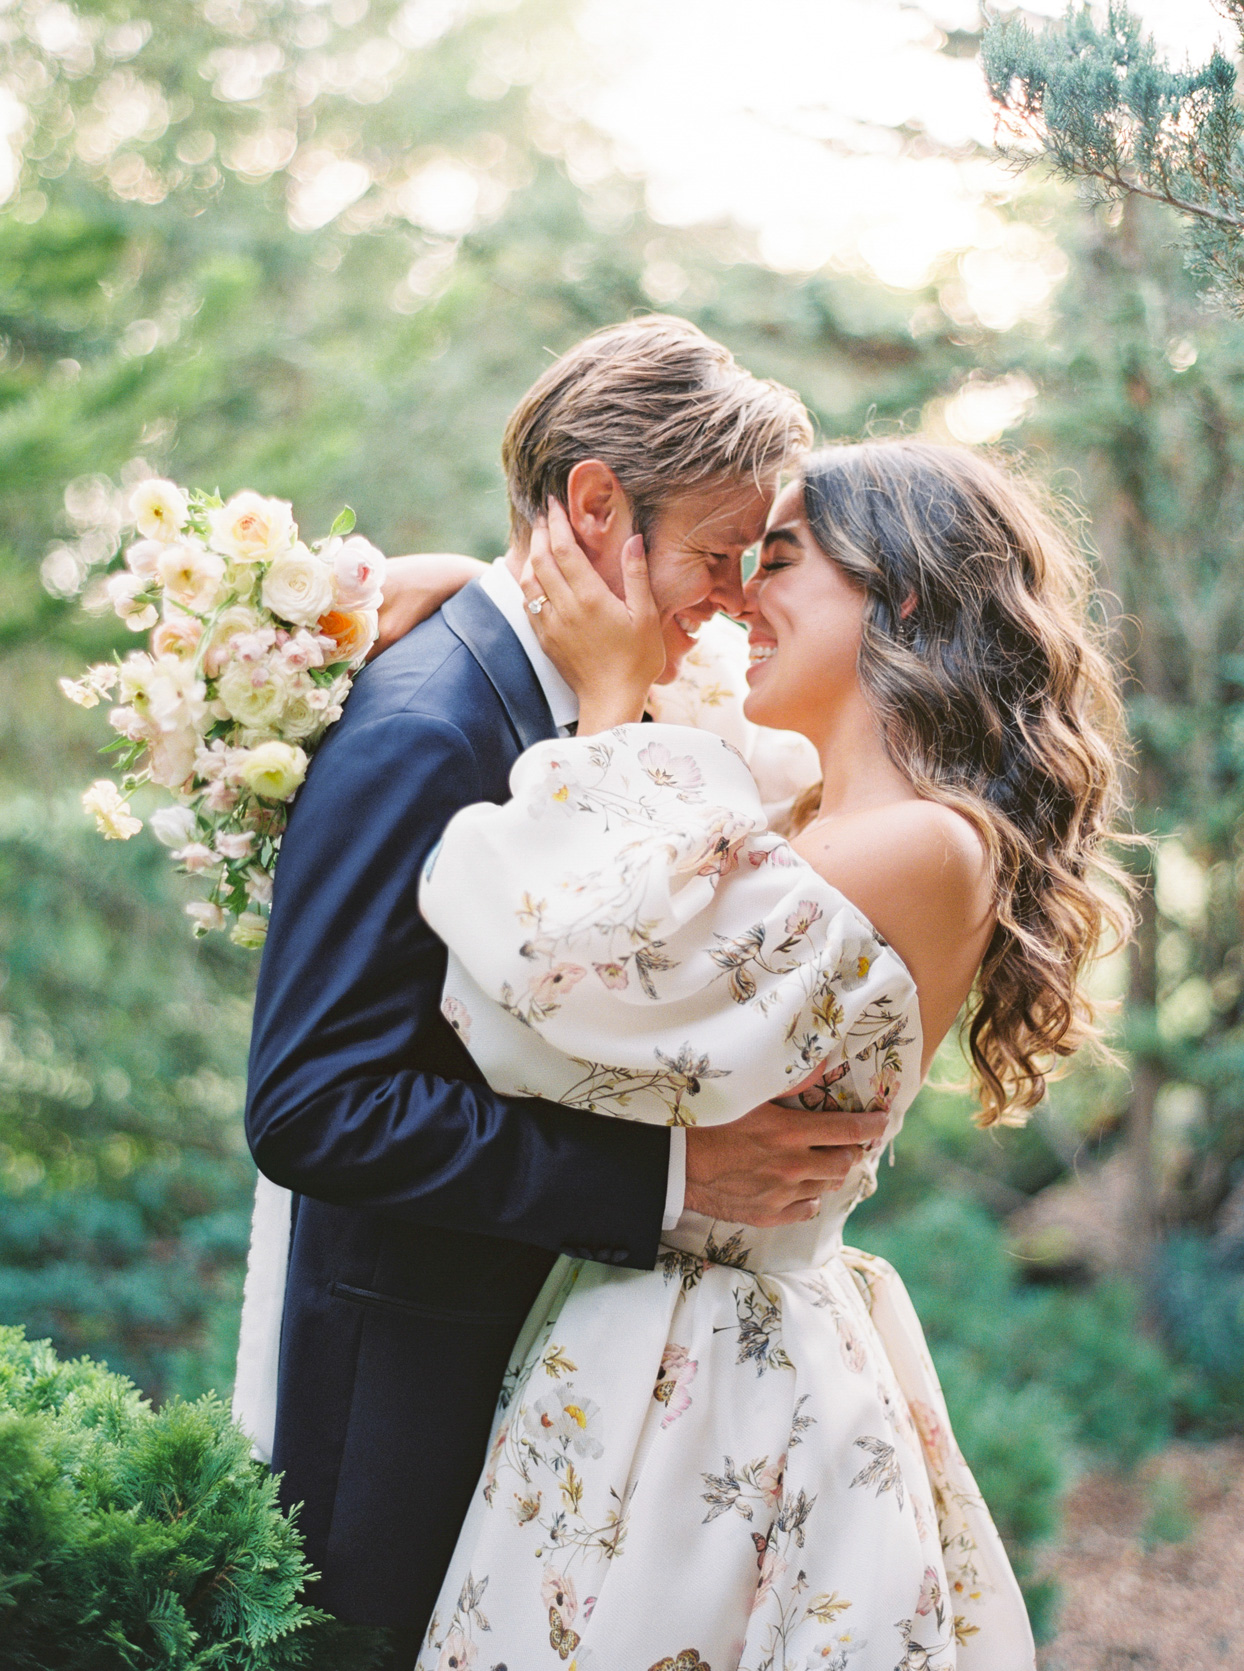 bride and groom embracing for wedding portrait